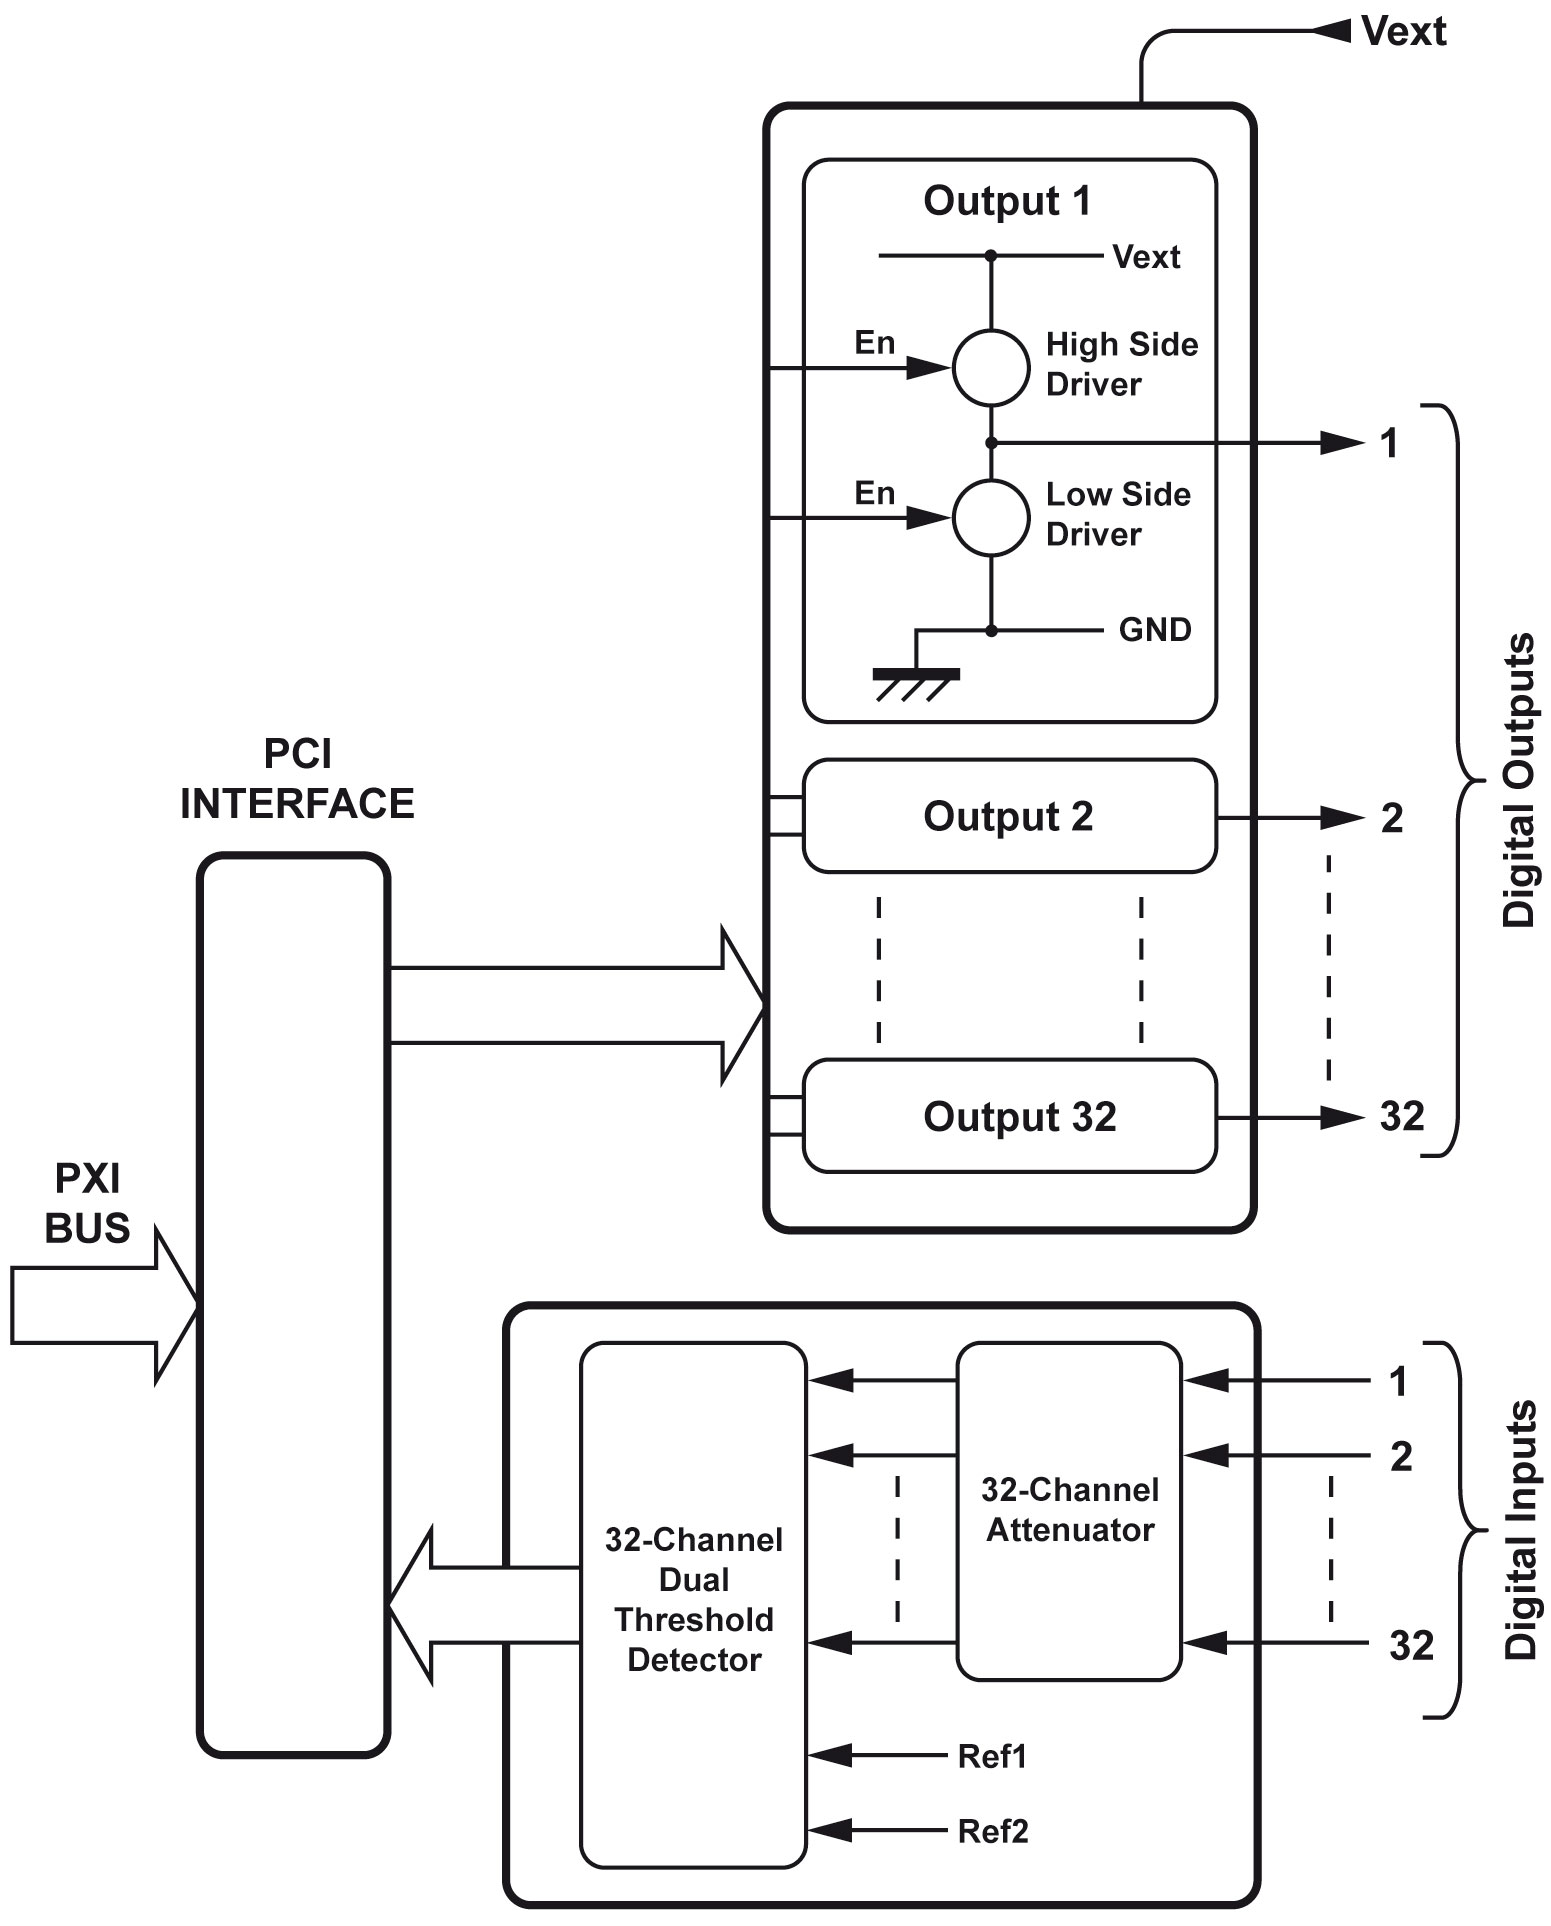 Flow diagram of 40-412-101